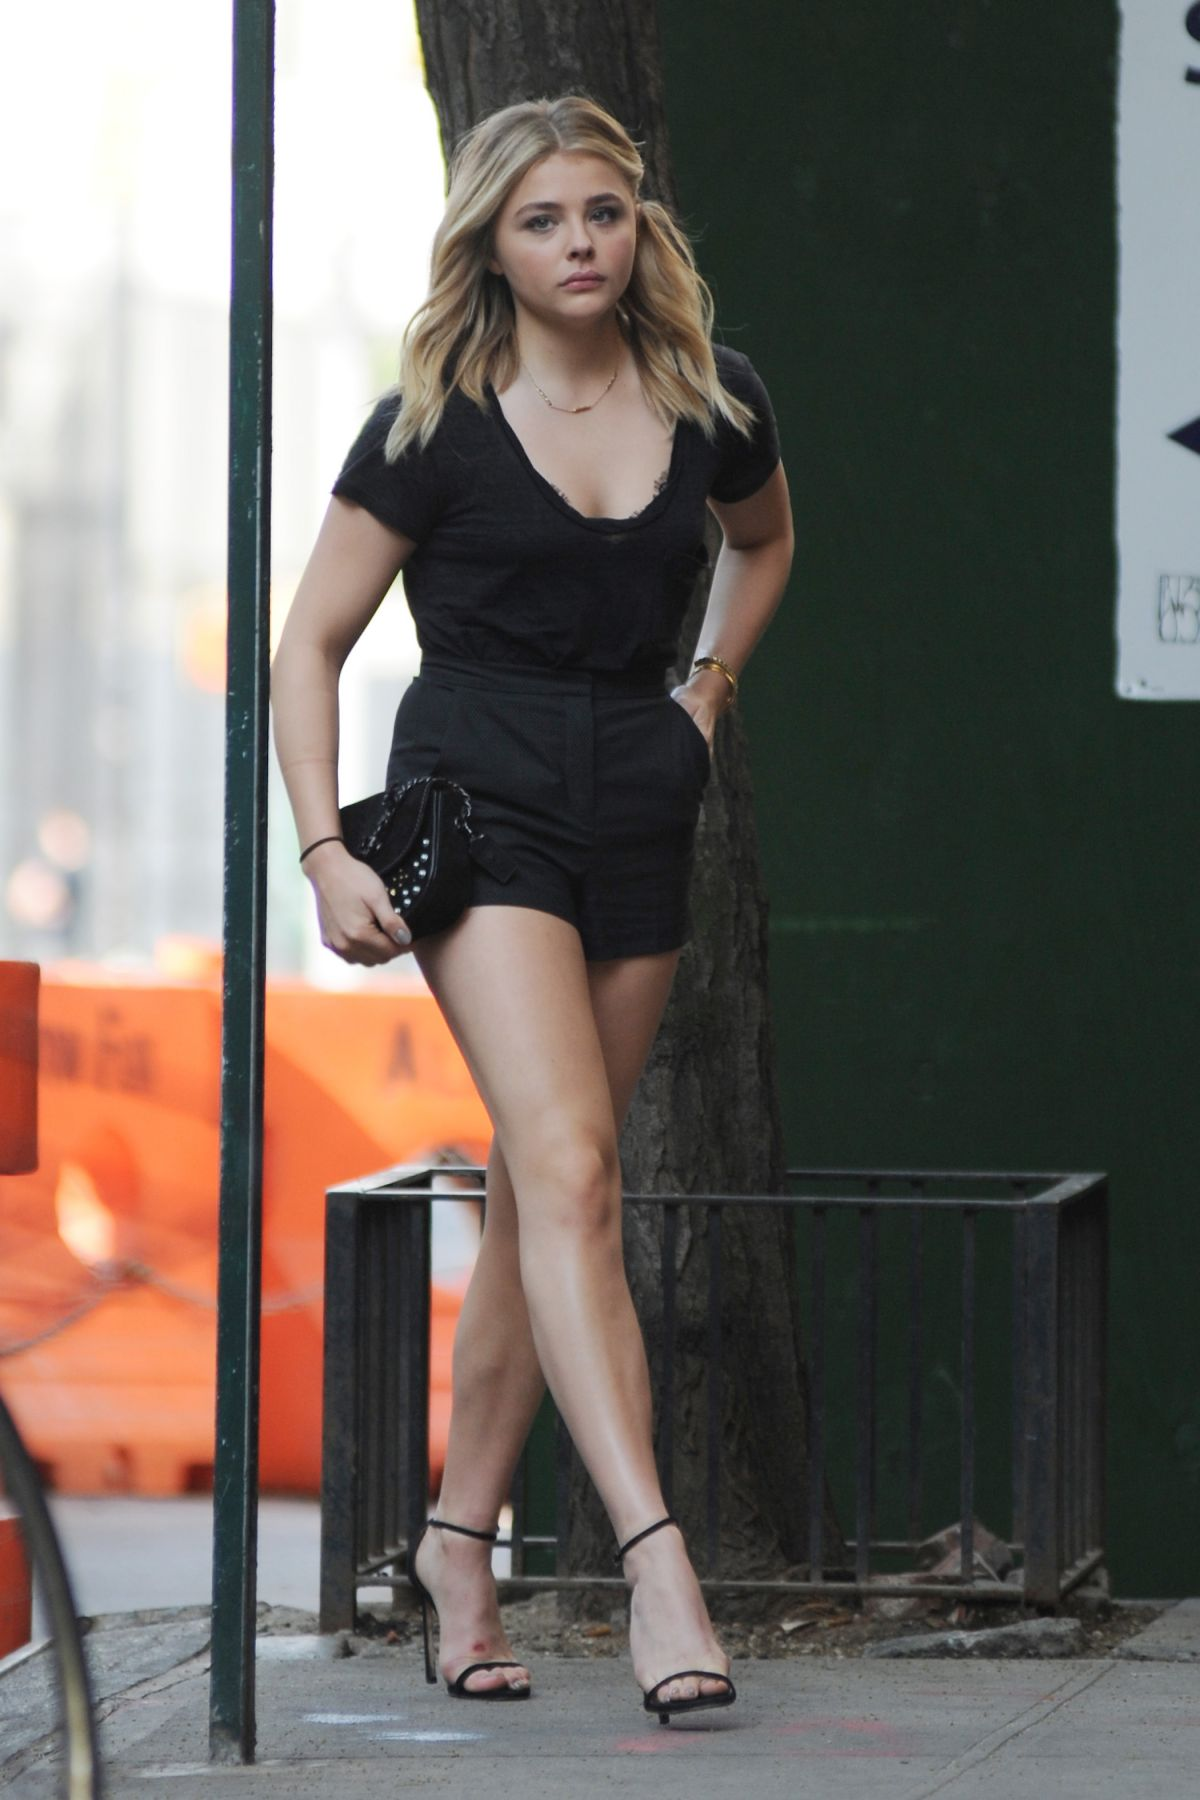 chloe grace moretz out in nyc - celebzz